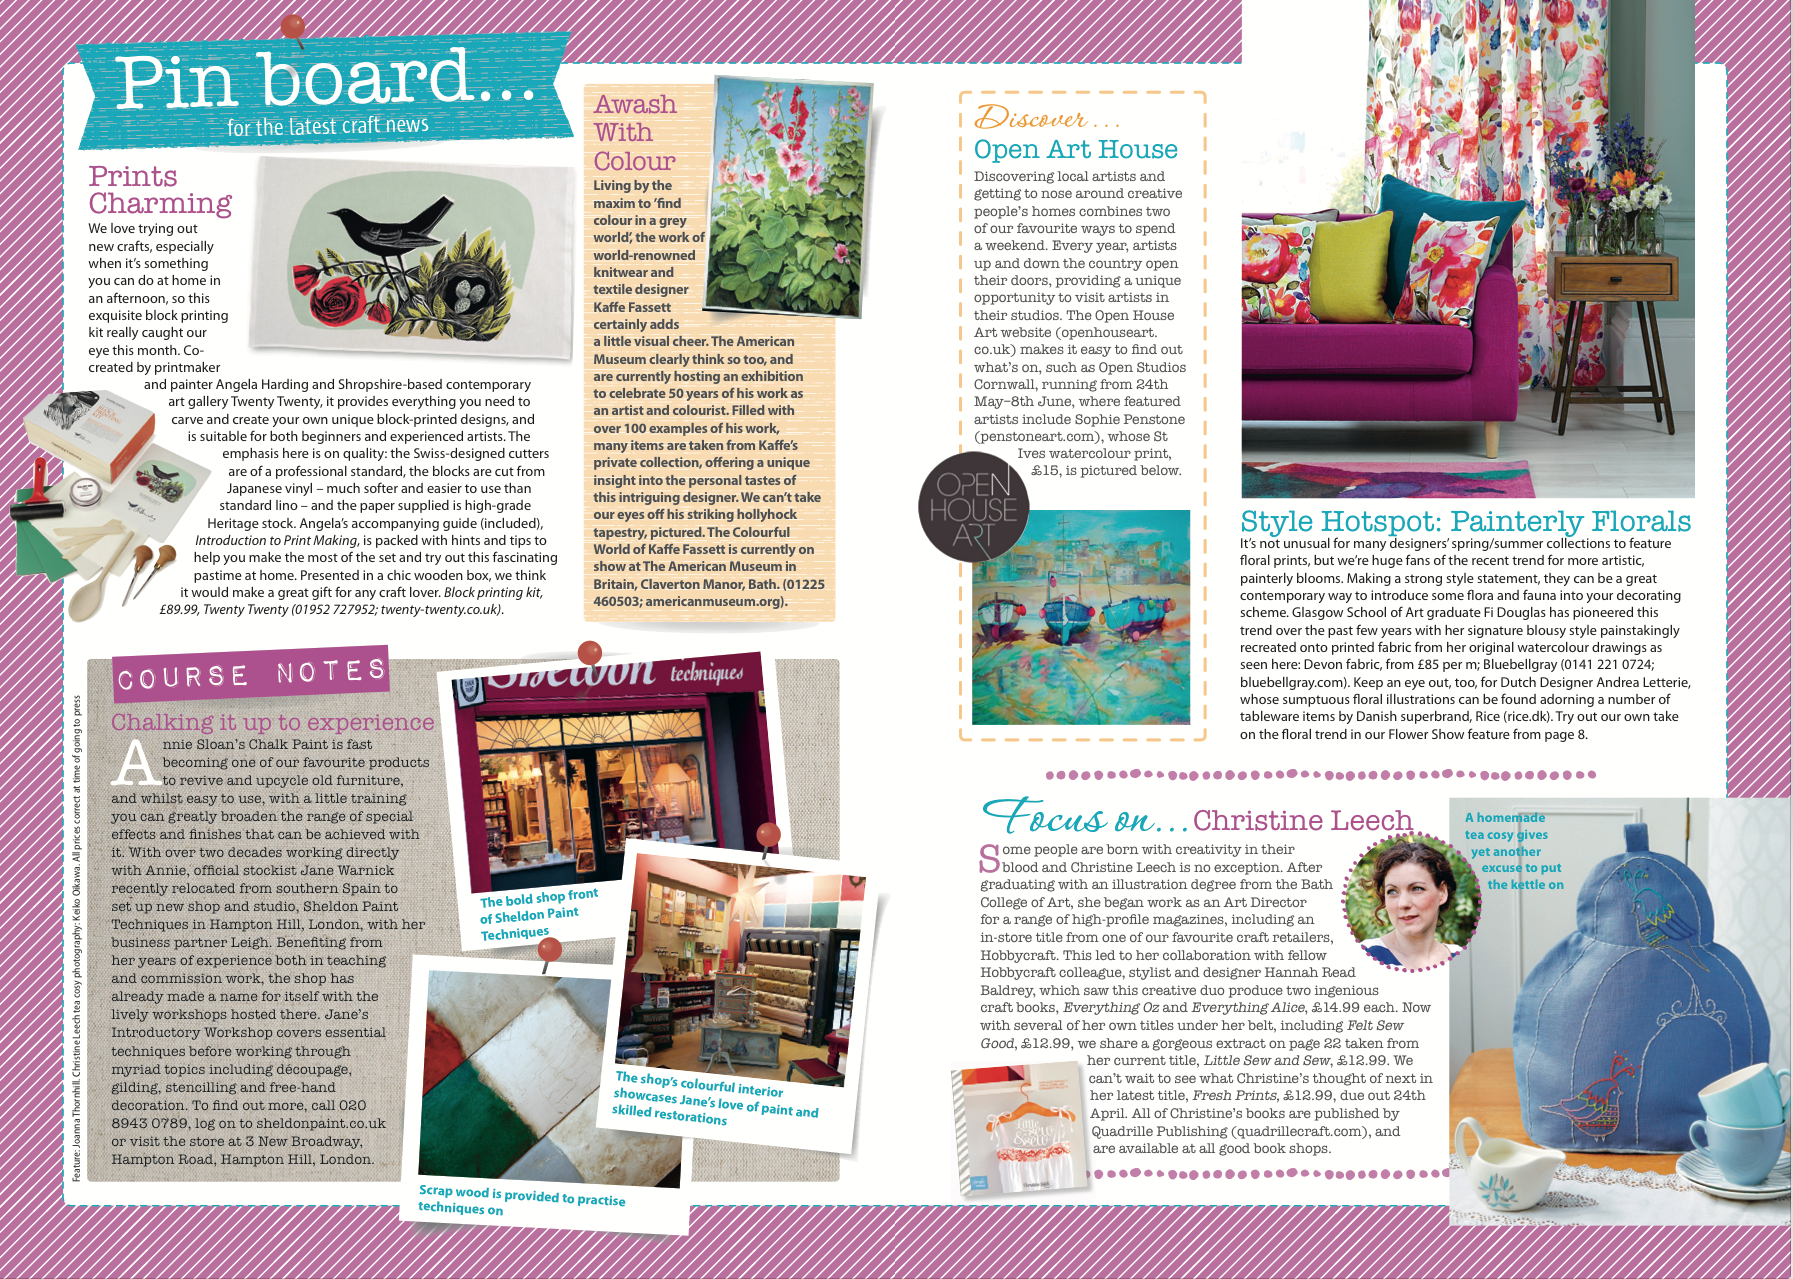 Pinboard by Joanna Thornhill for Craft from Woman's Weekly, May 2014